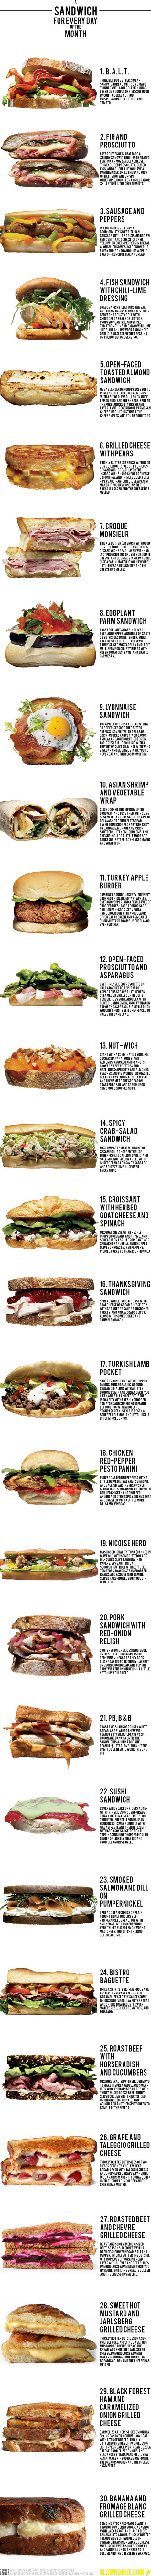 A sandwich for every day of the month. | Recipe collection | Scoop.it